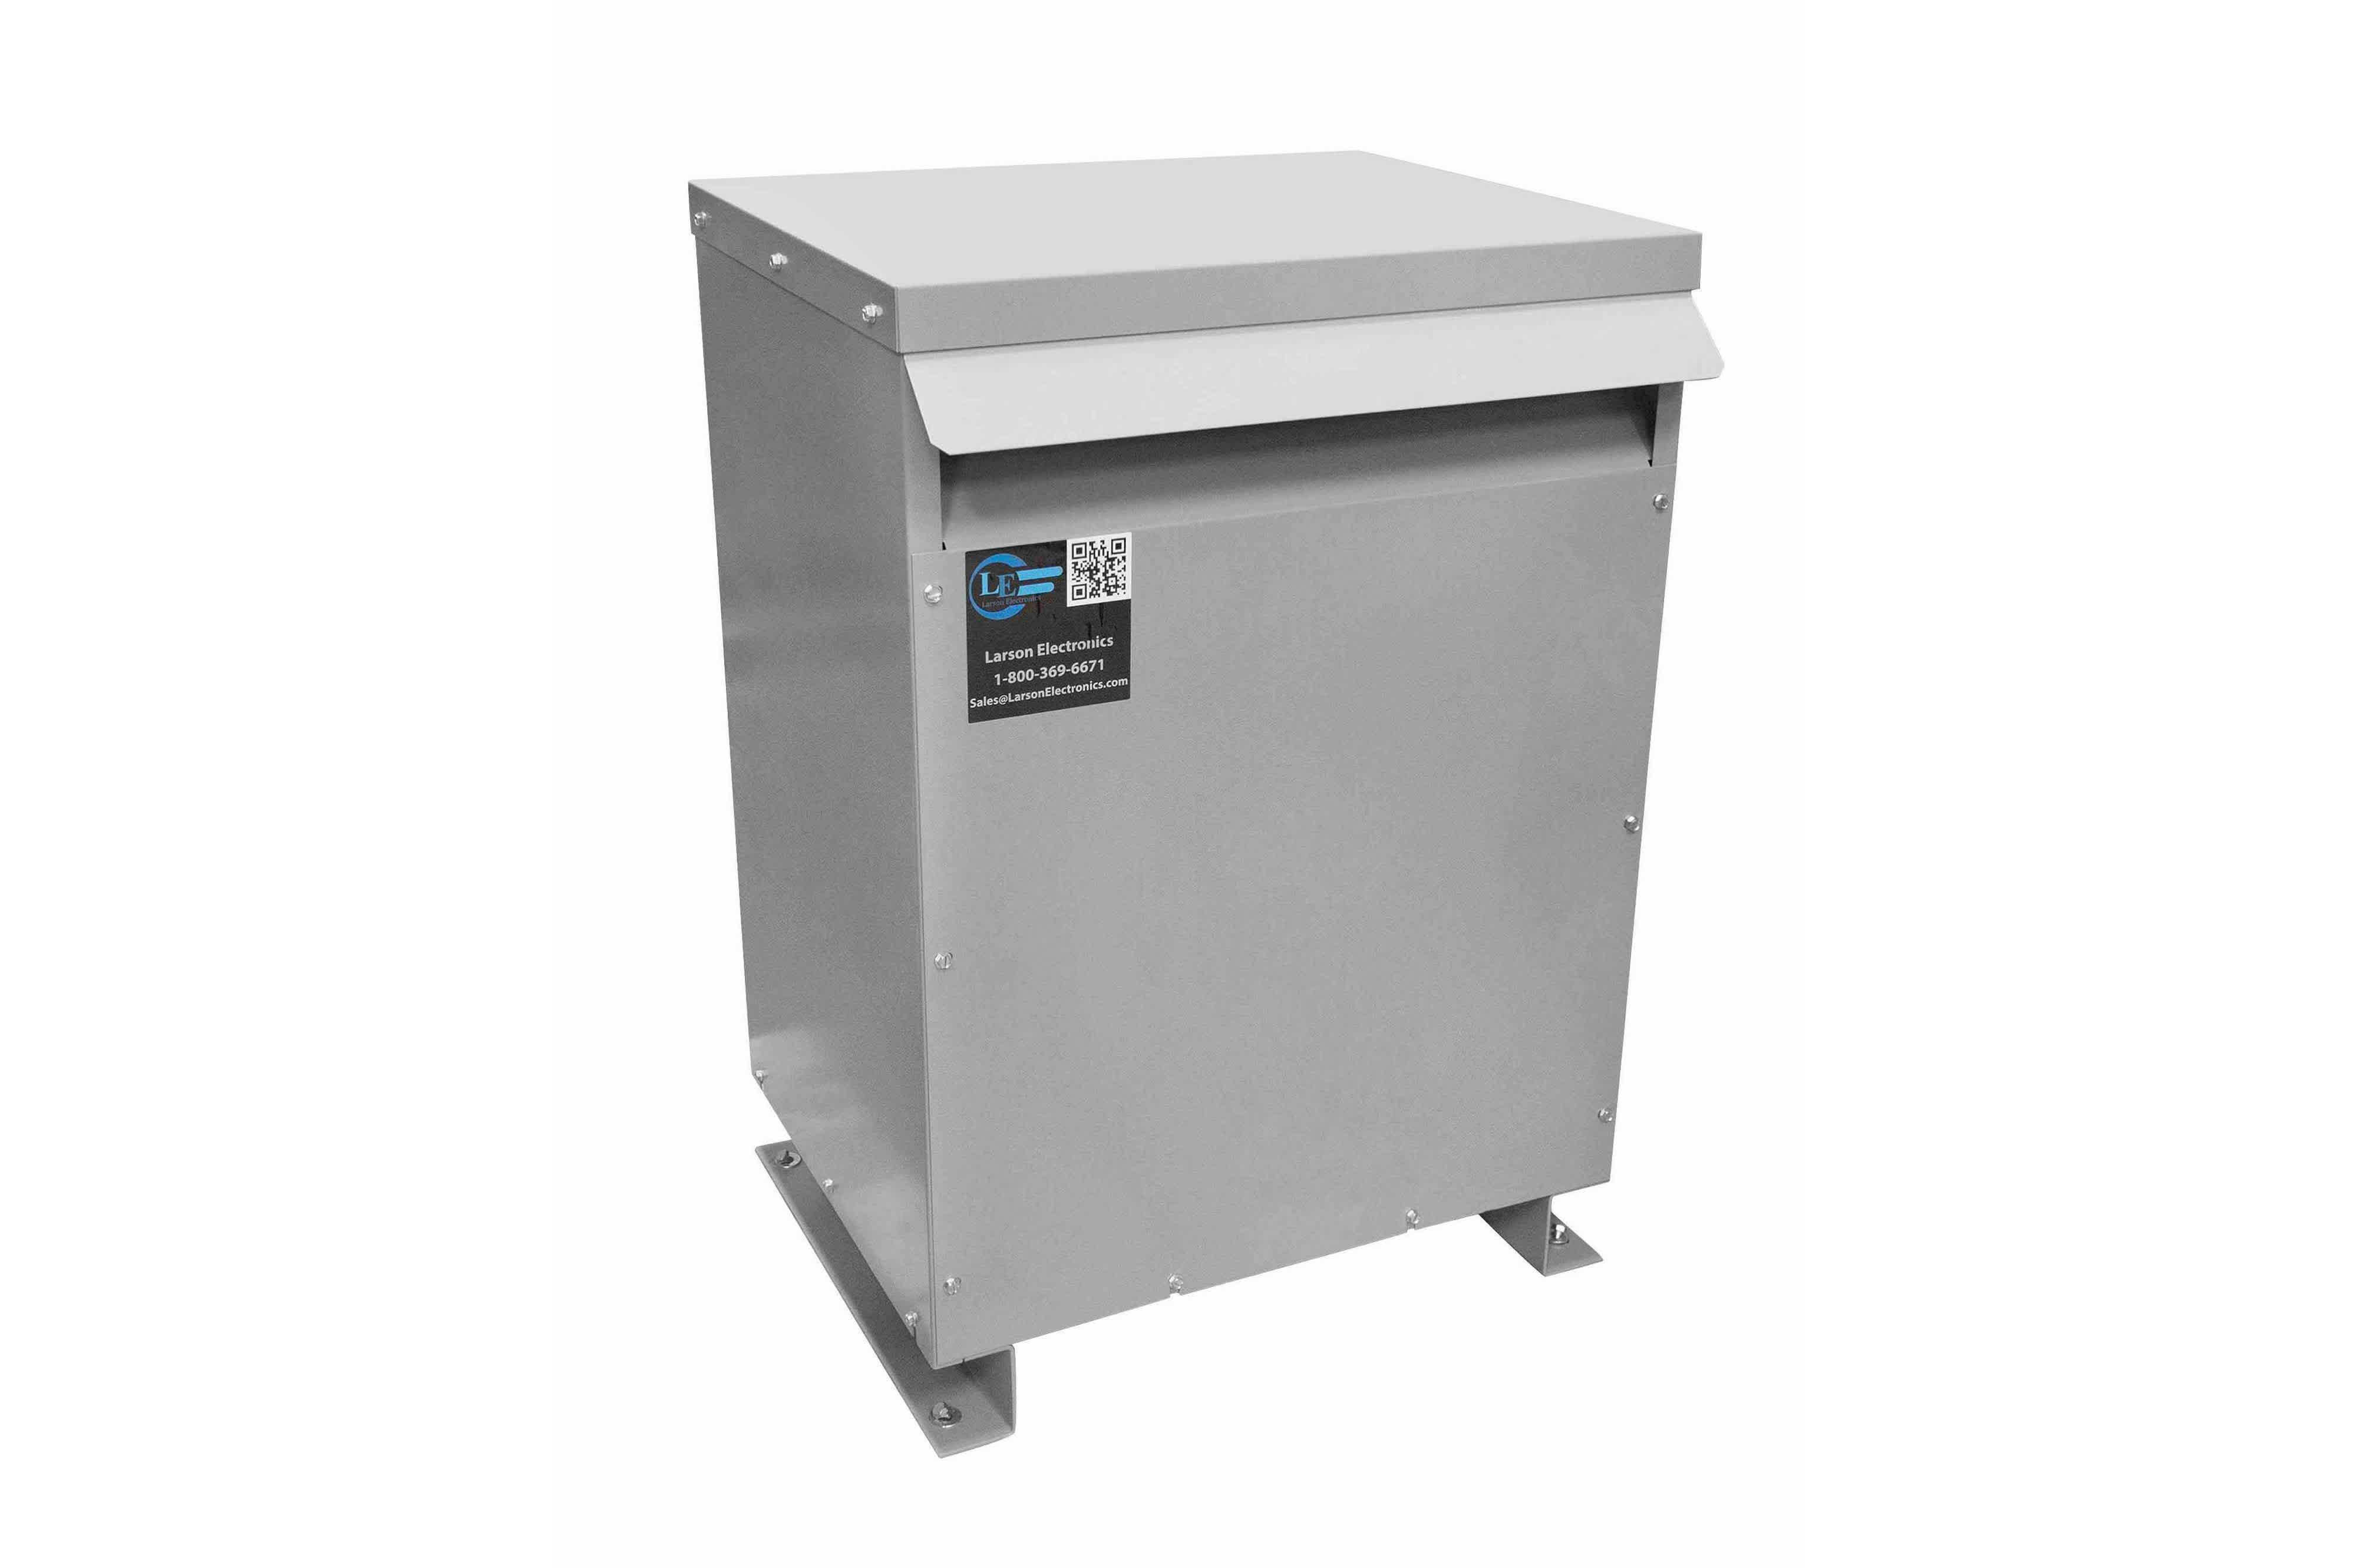 225 kVA 3PH Isolation Transformer, 460V Wye Primary, 240V/120 Delta Secondary, N3R, Ventilated, 60 Hz